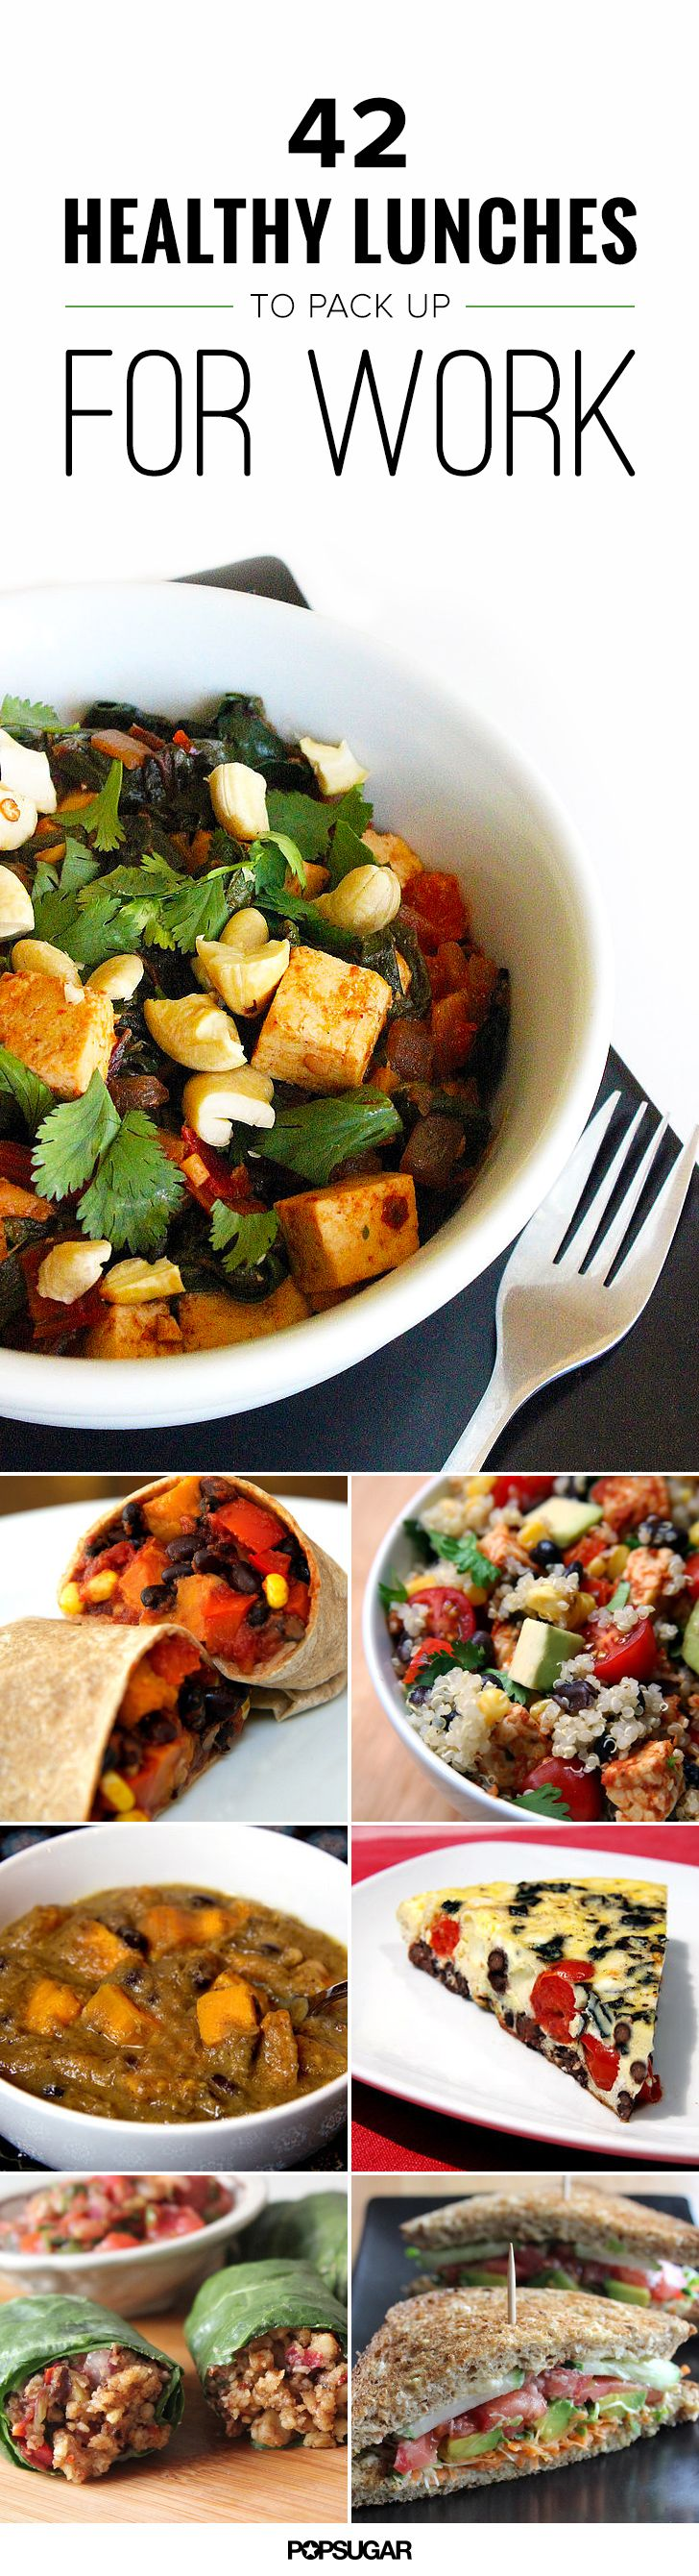 42 healthy lunch recipes!